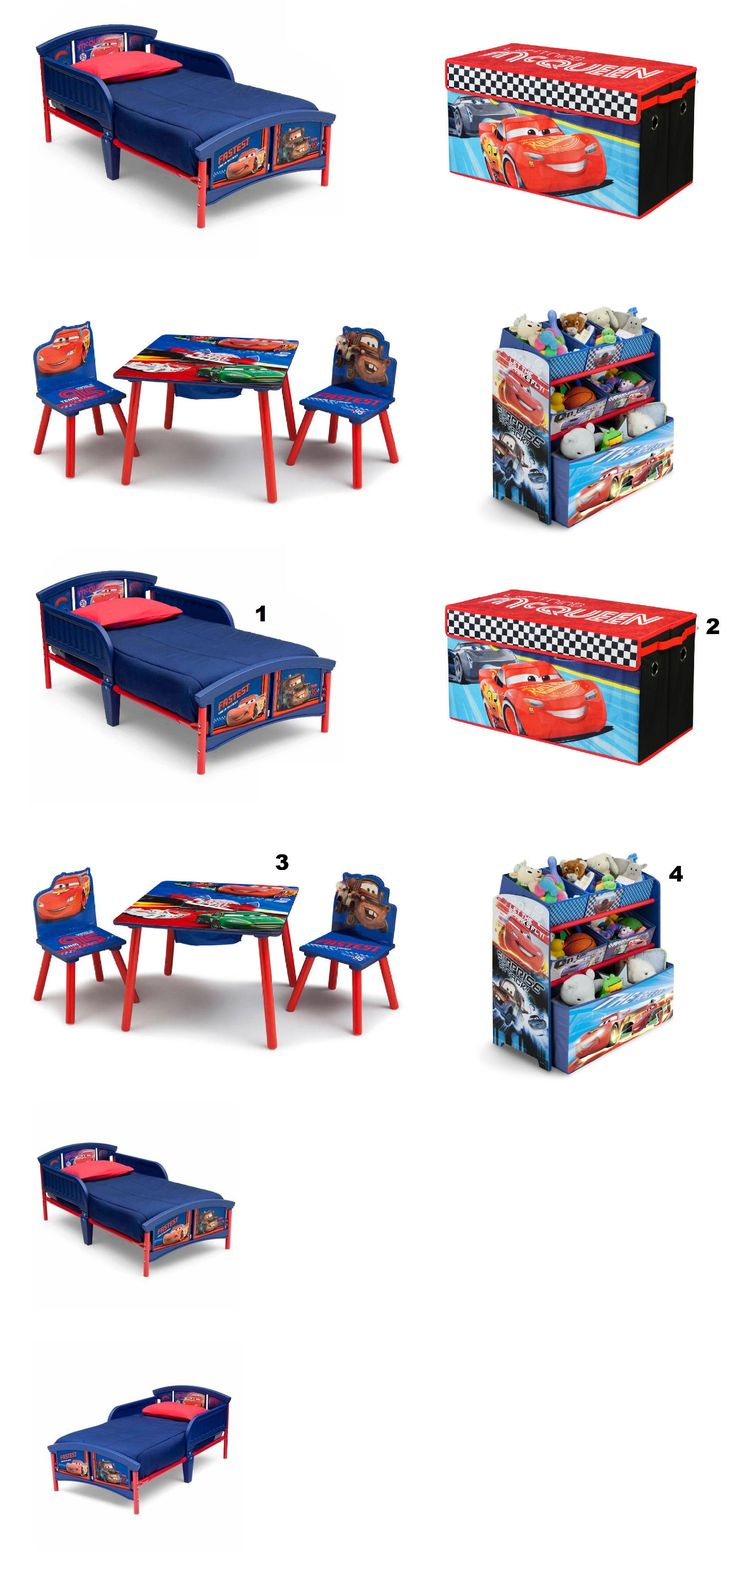 Storage toddler beds buy a storage toddler bed today amp save - Kids Furniture New Disney Cars Bedroom Furniture Set Room Toddler Bed Table Storage Toy Bin